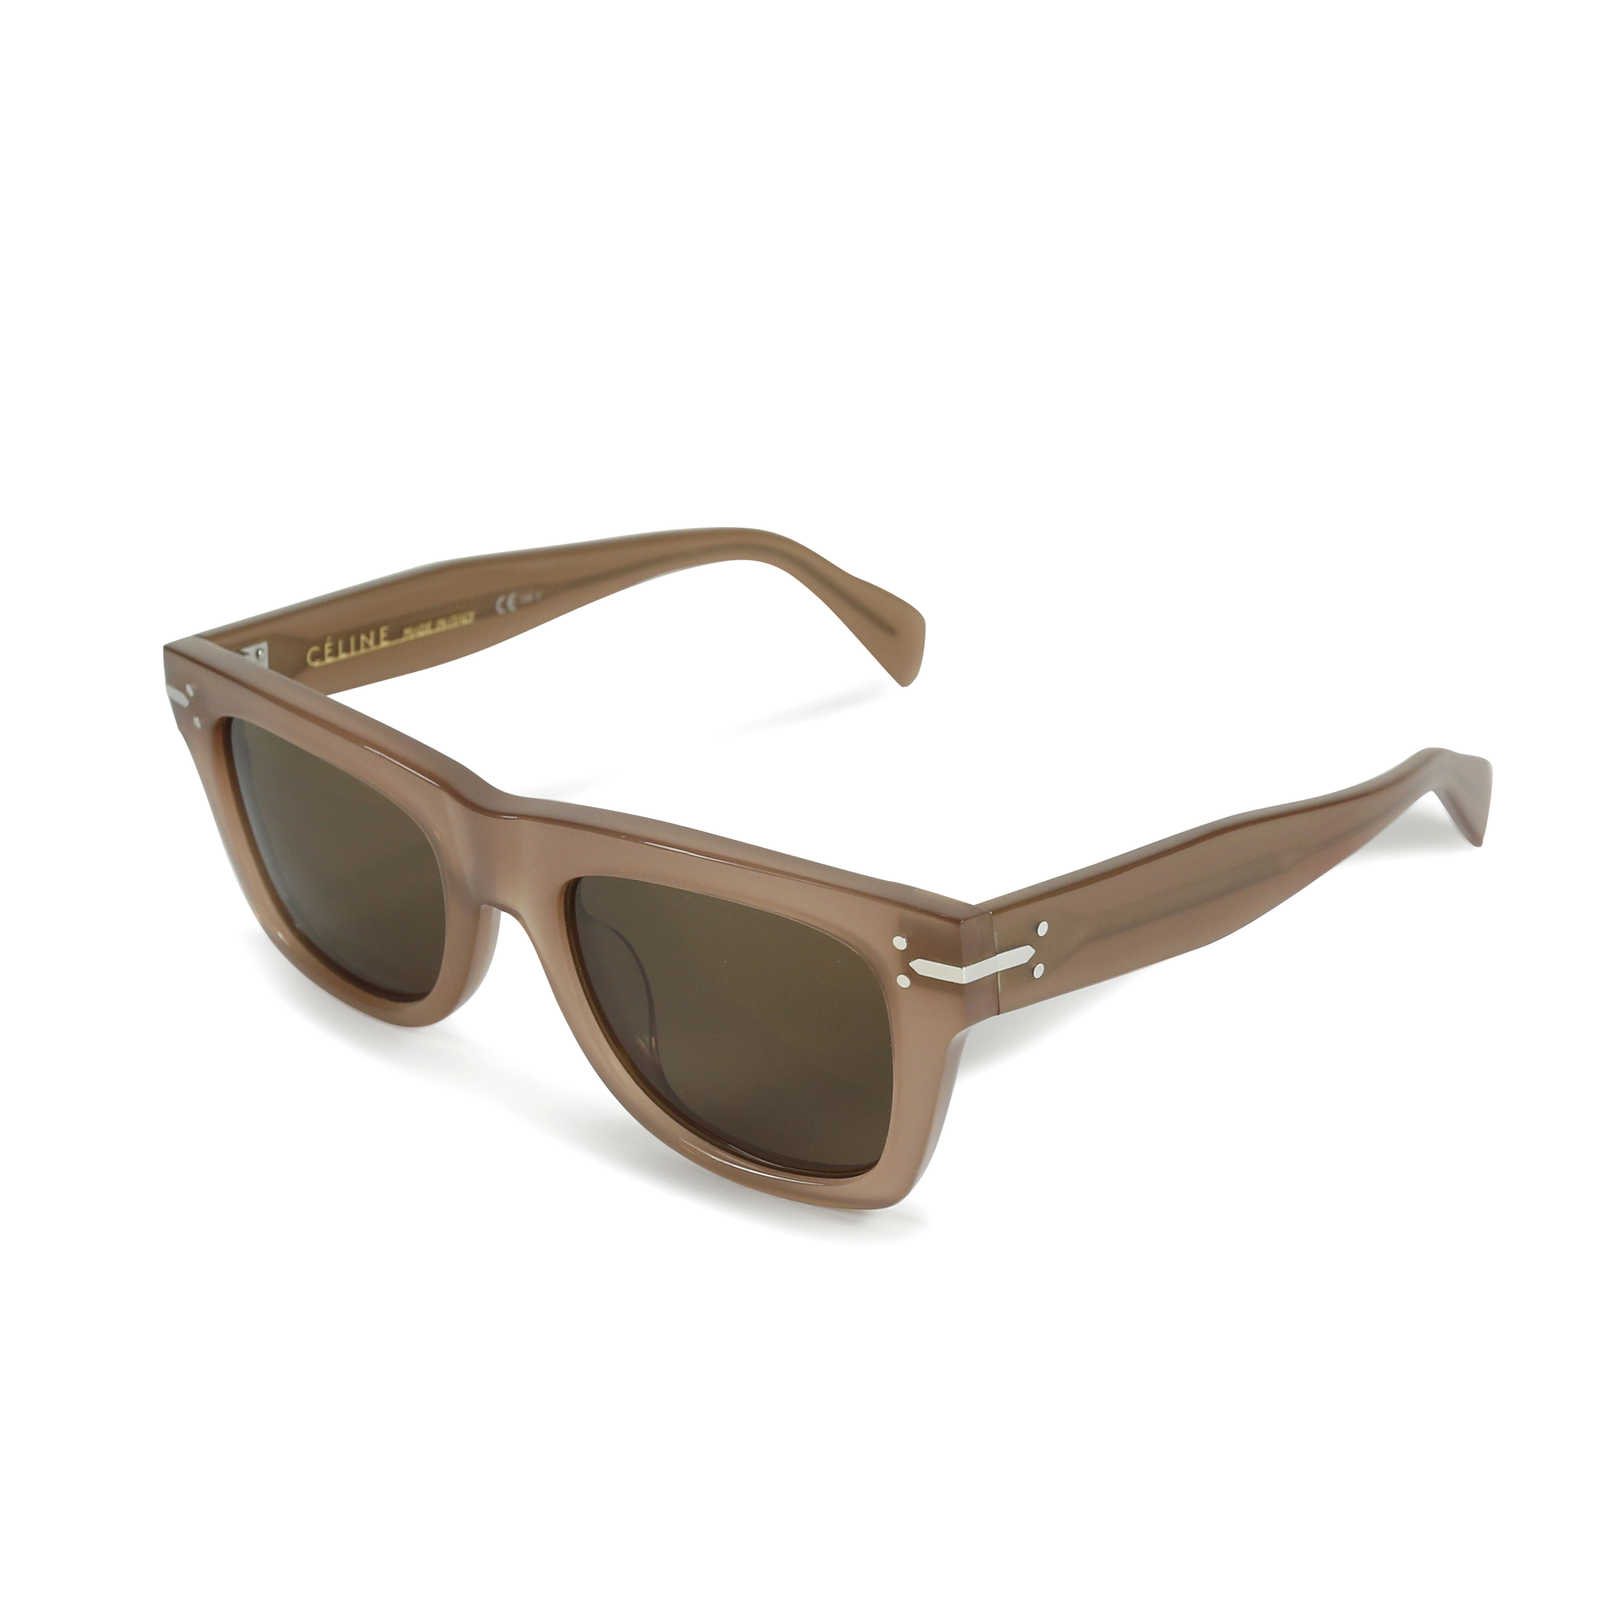 db3e8a3e899 ... Authentic Second Hand Céline Square Framed Sunglasses (PSS-143-00070) -  Thumbnail ...